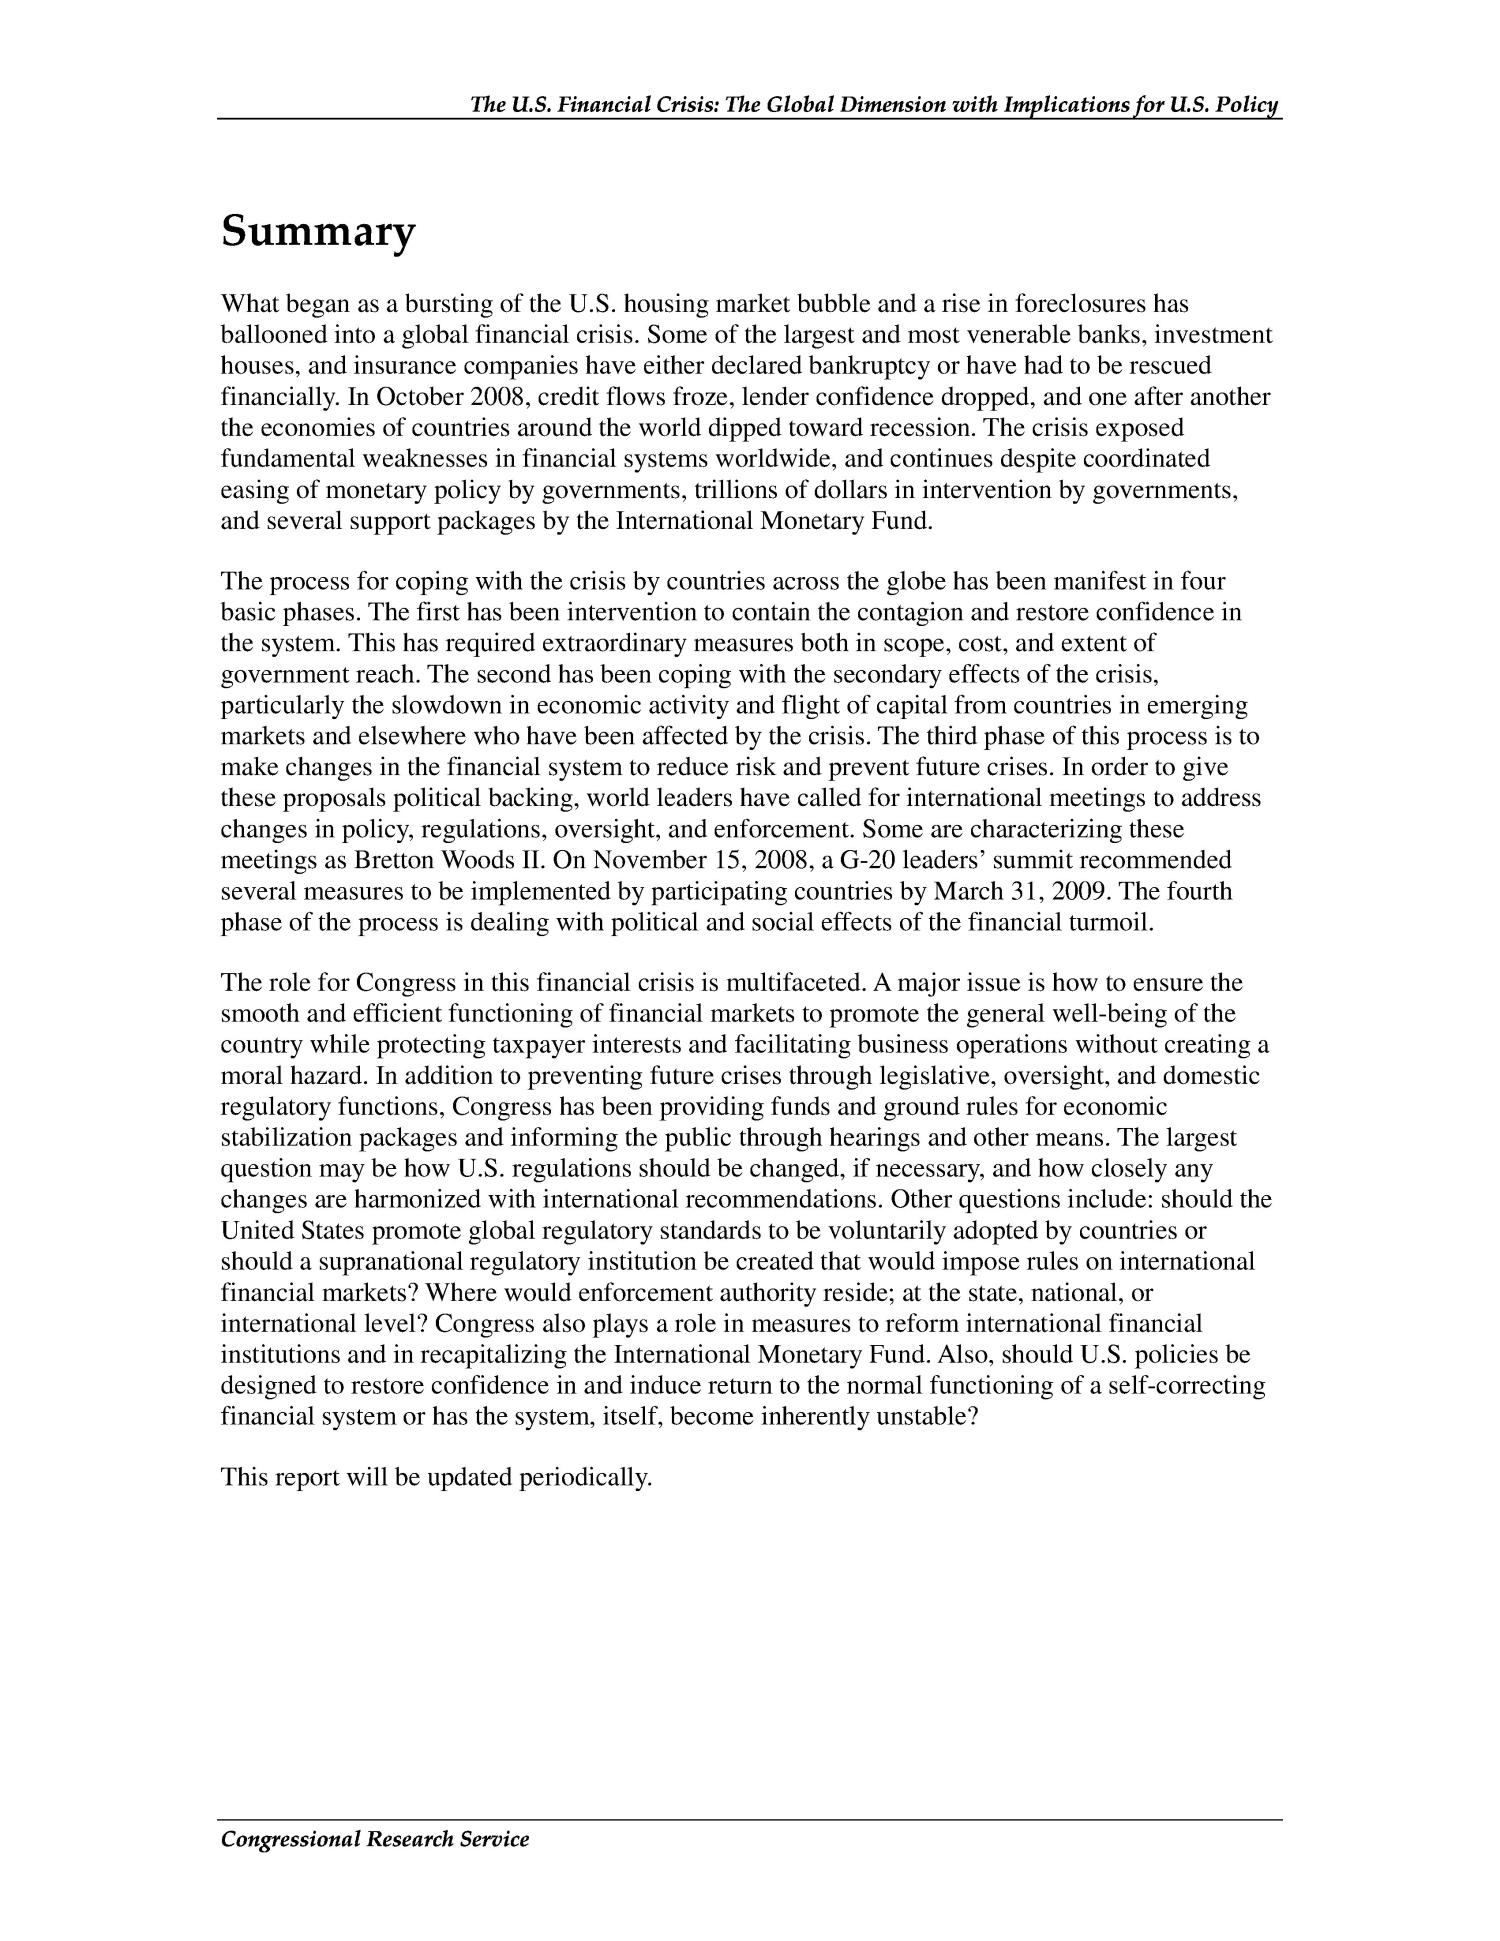 The U.S. Financial Crisis: The Global Dimension with Implications for U.S. Policy                                                                                                      [Sequence #]: 2 of 88